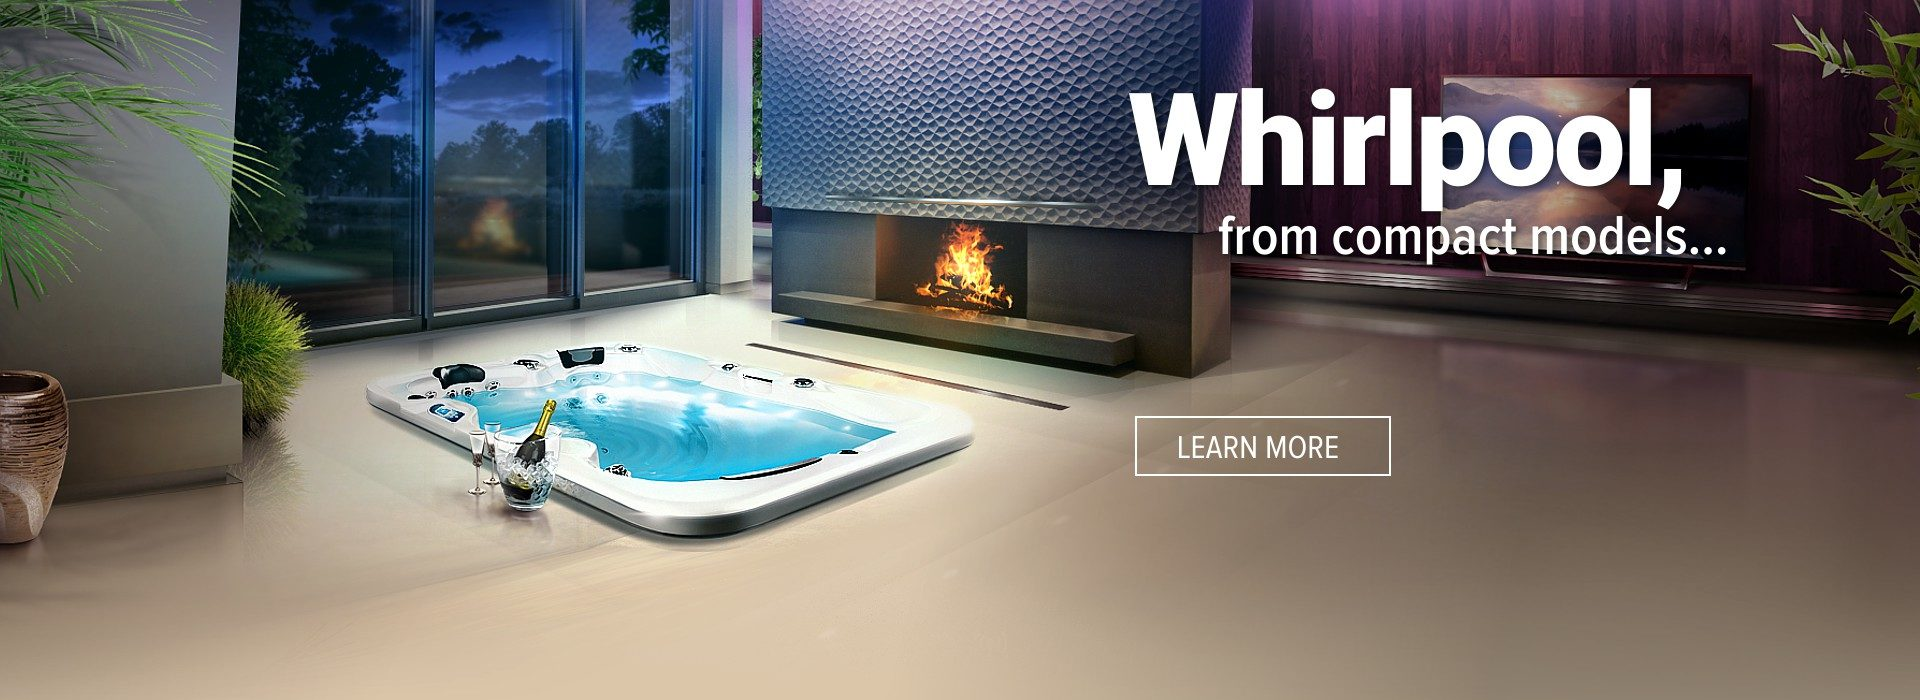 Whirlpool Canadian Spa International® - Outdoor jacuzzi, hot tubs and swim spa – Spa Studio